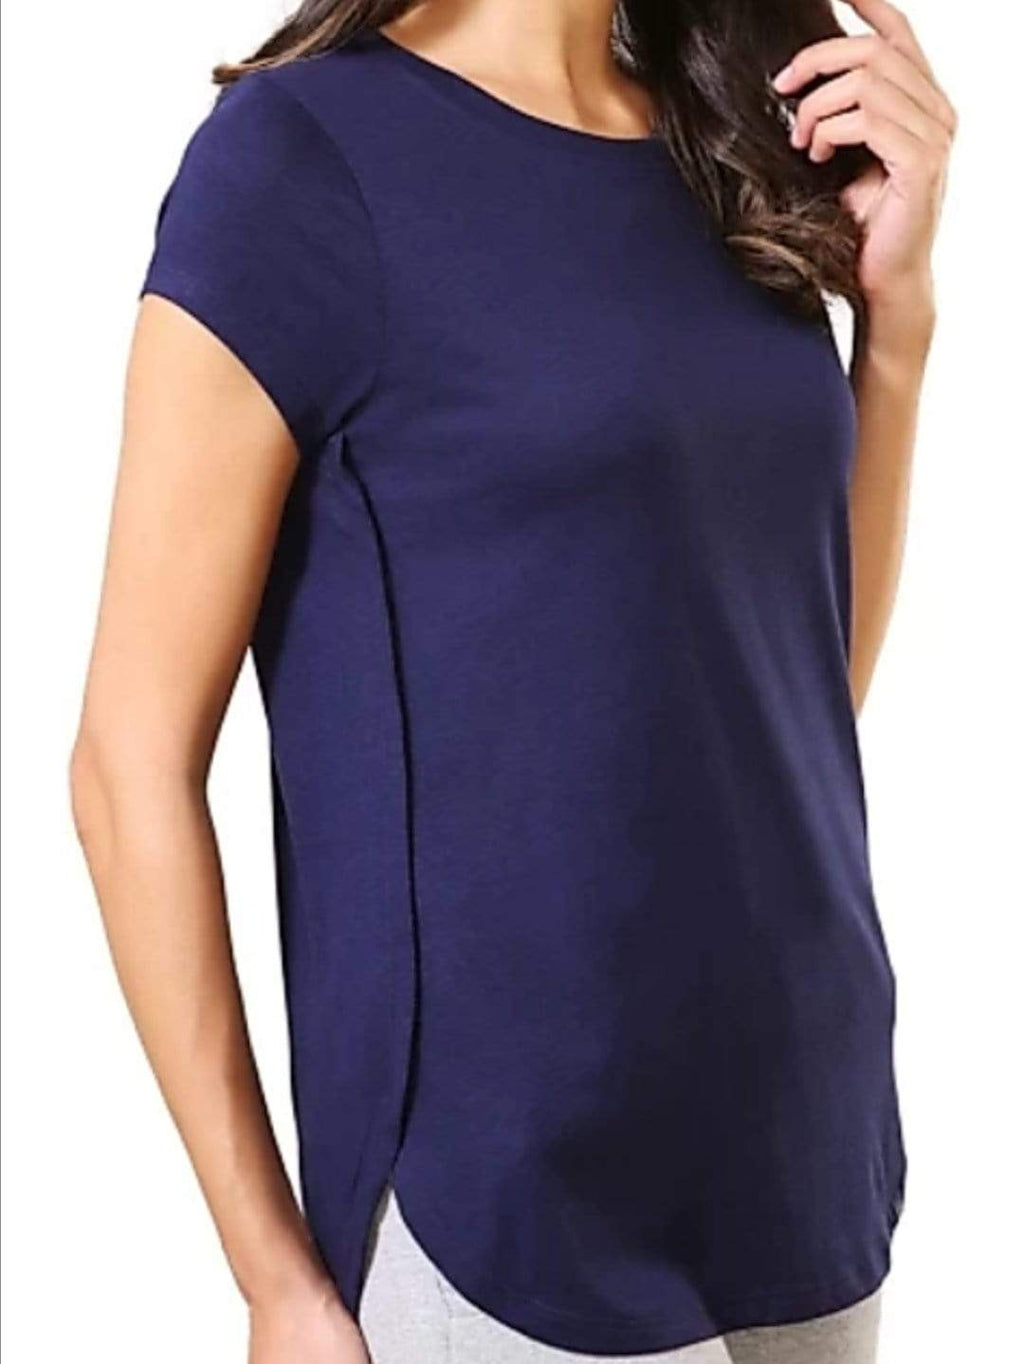 Van Heusen Women Cotton Round Neck T-Shirt- 55403 - HARSHU FASHION